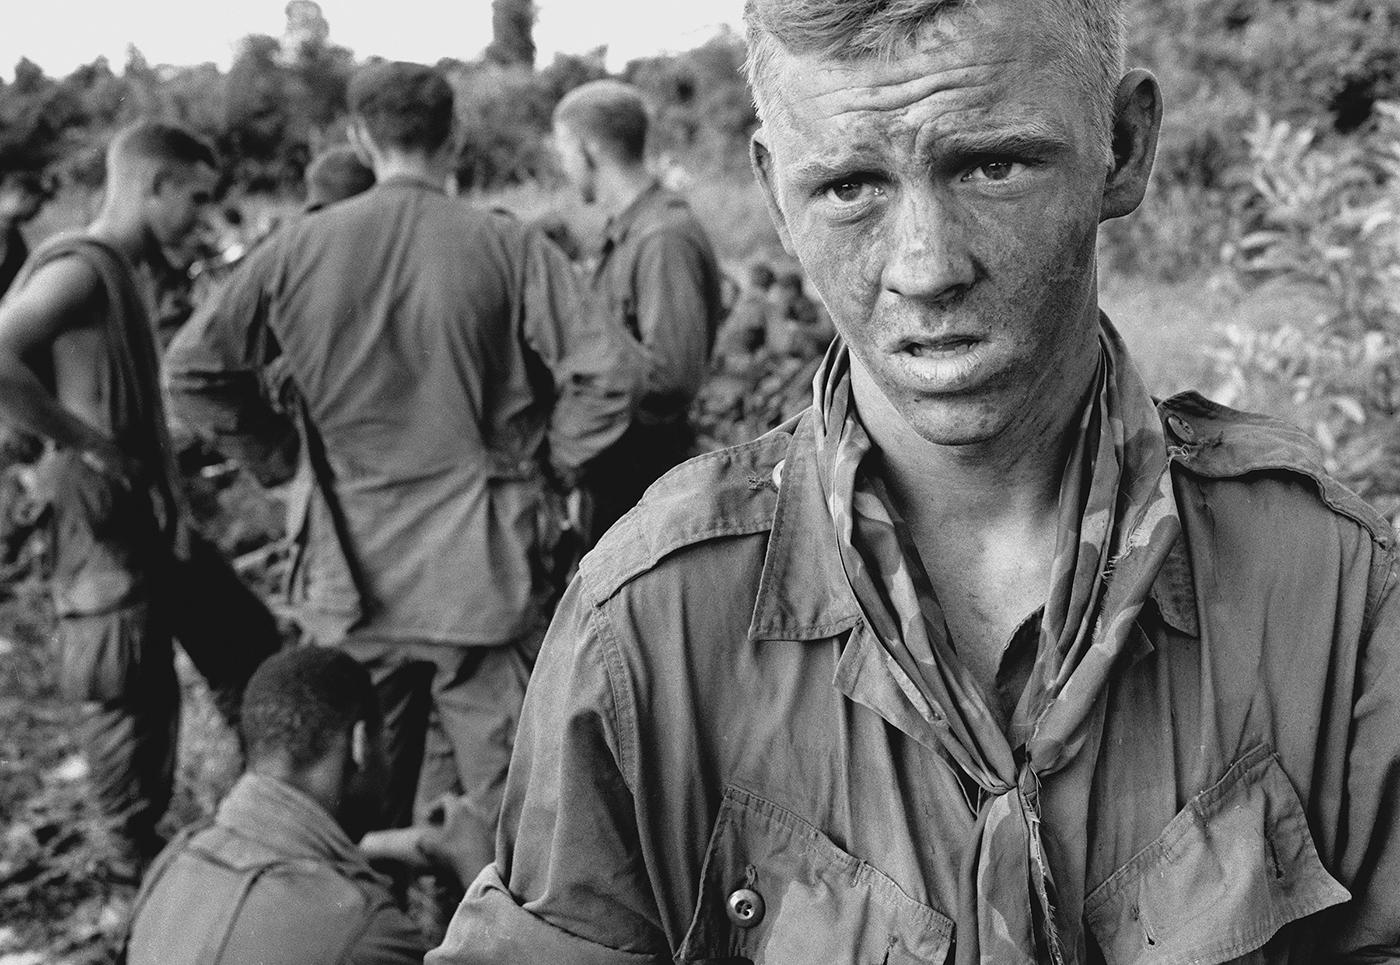 173rd Airborne Brigade paratrooper after an early morning firefight. July 14, 1966. Photo: AP/John Nance